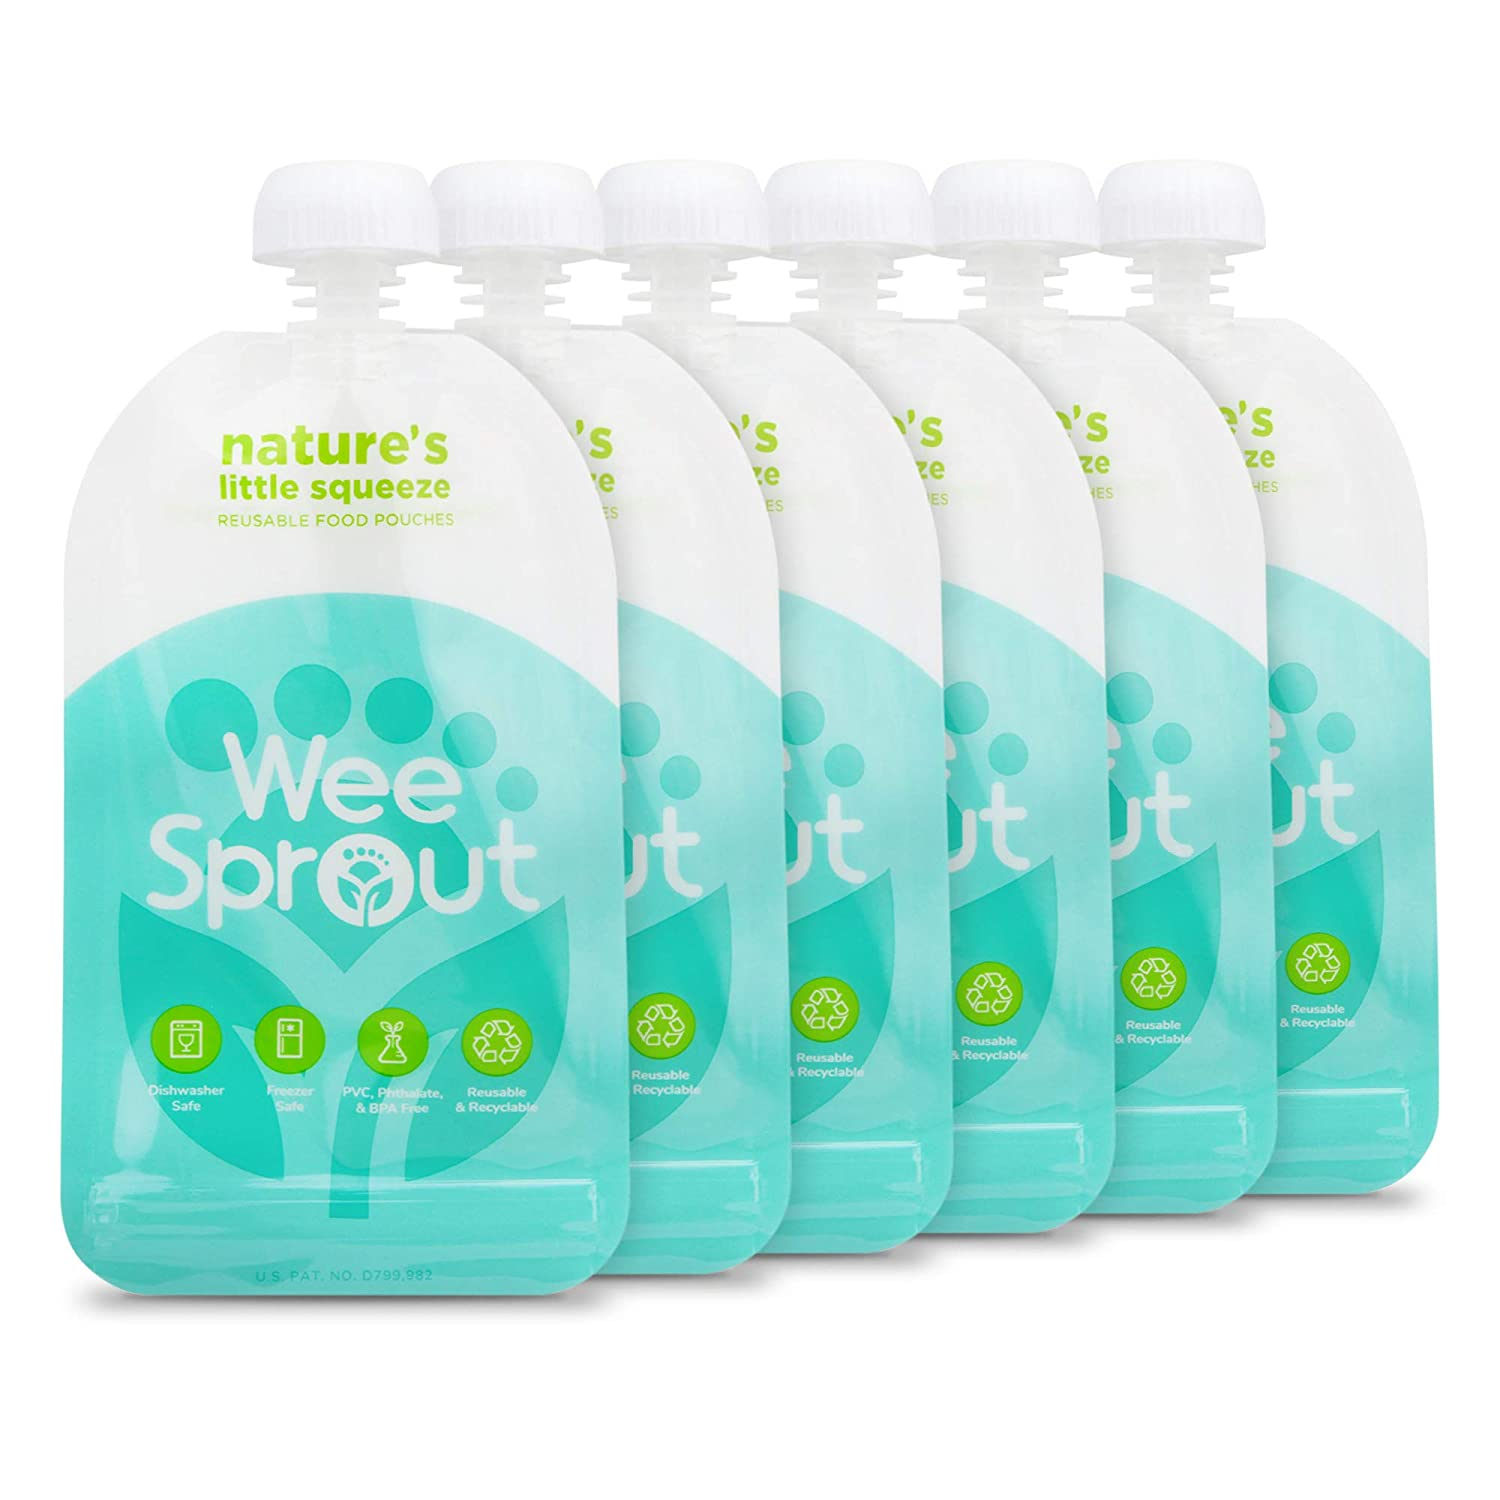 WeeSprout Double Zipper Reusable Food Pouches | 6 Pack 5 fl oz Size Pouches | Blue